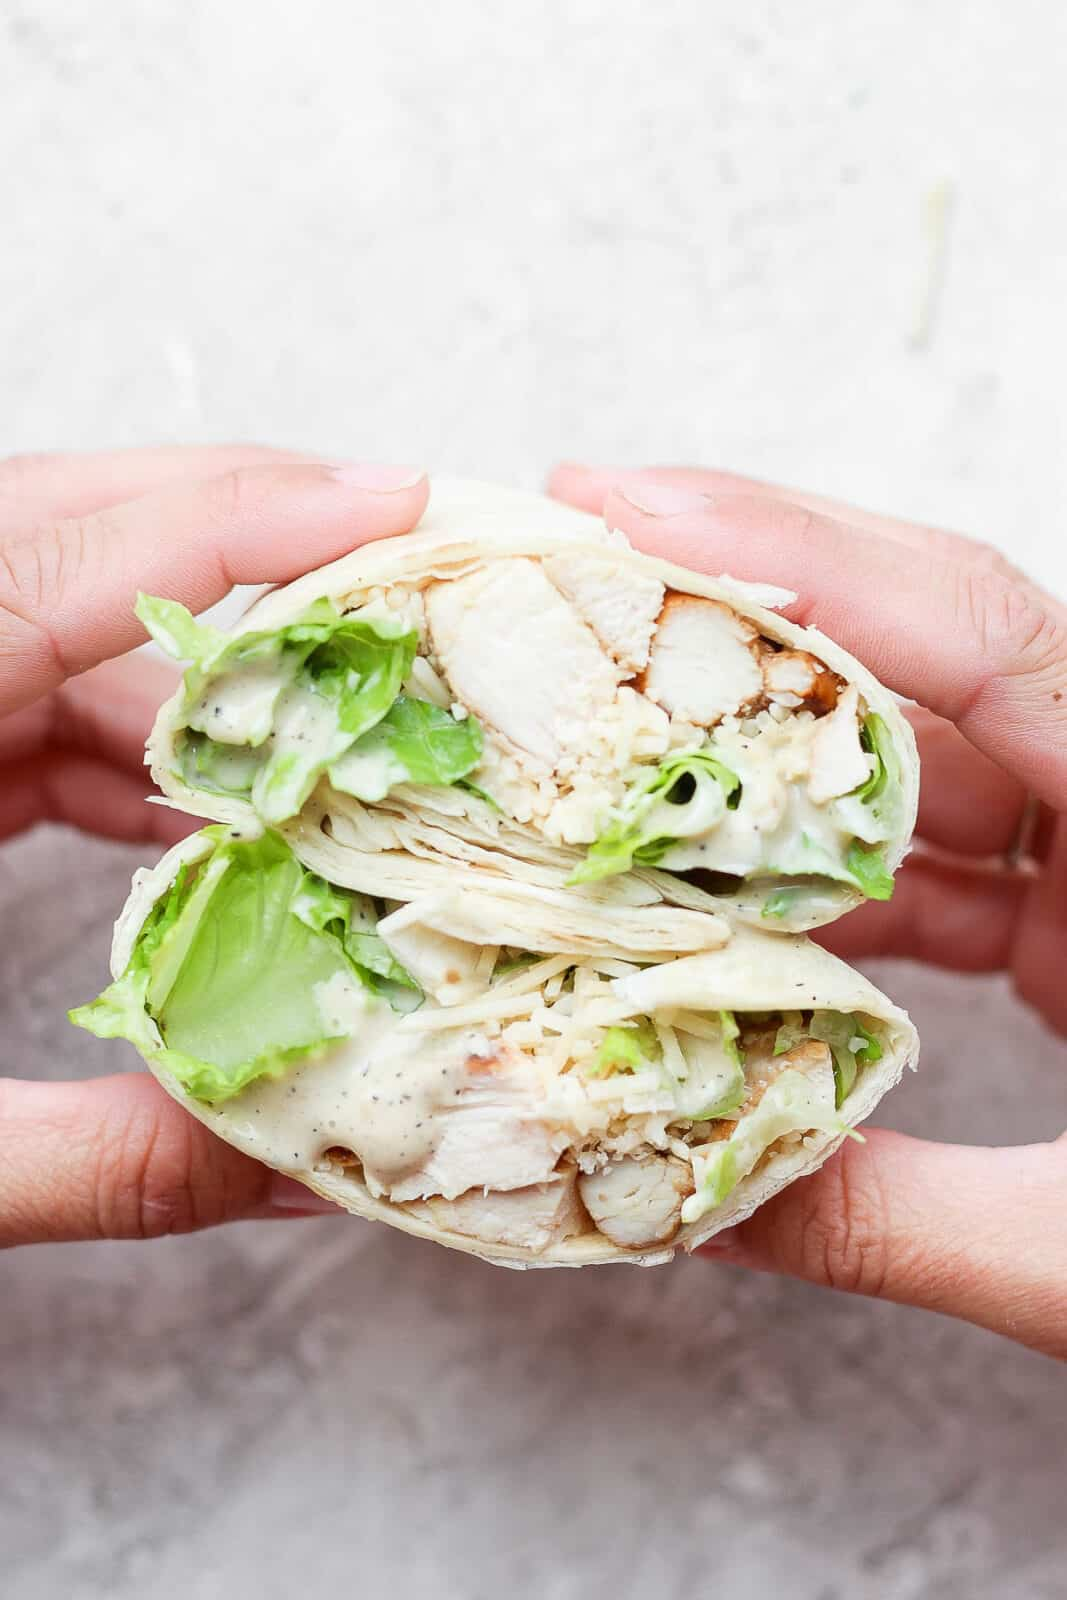 Hands holding a chicken caesar wrap that was cut open in the middle.